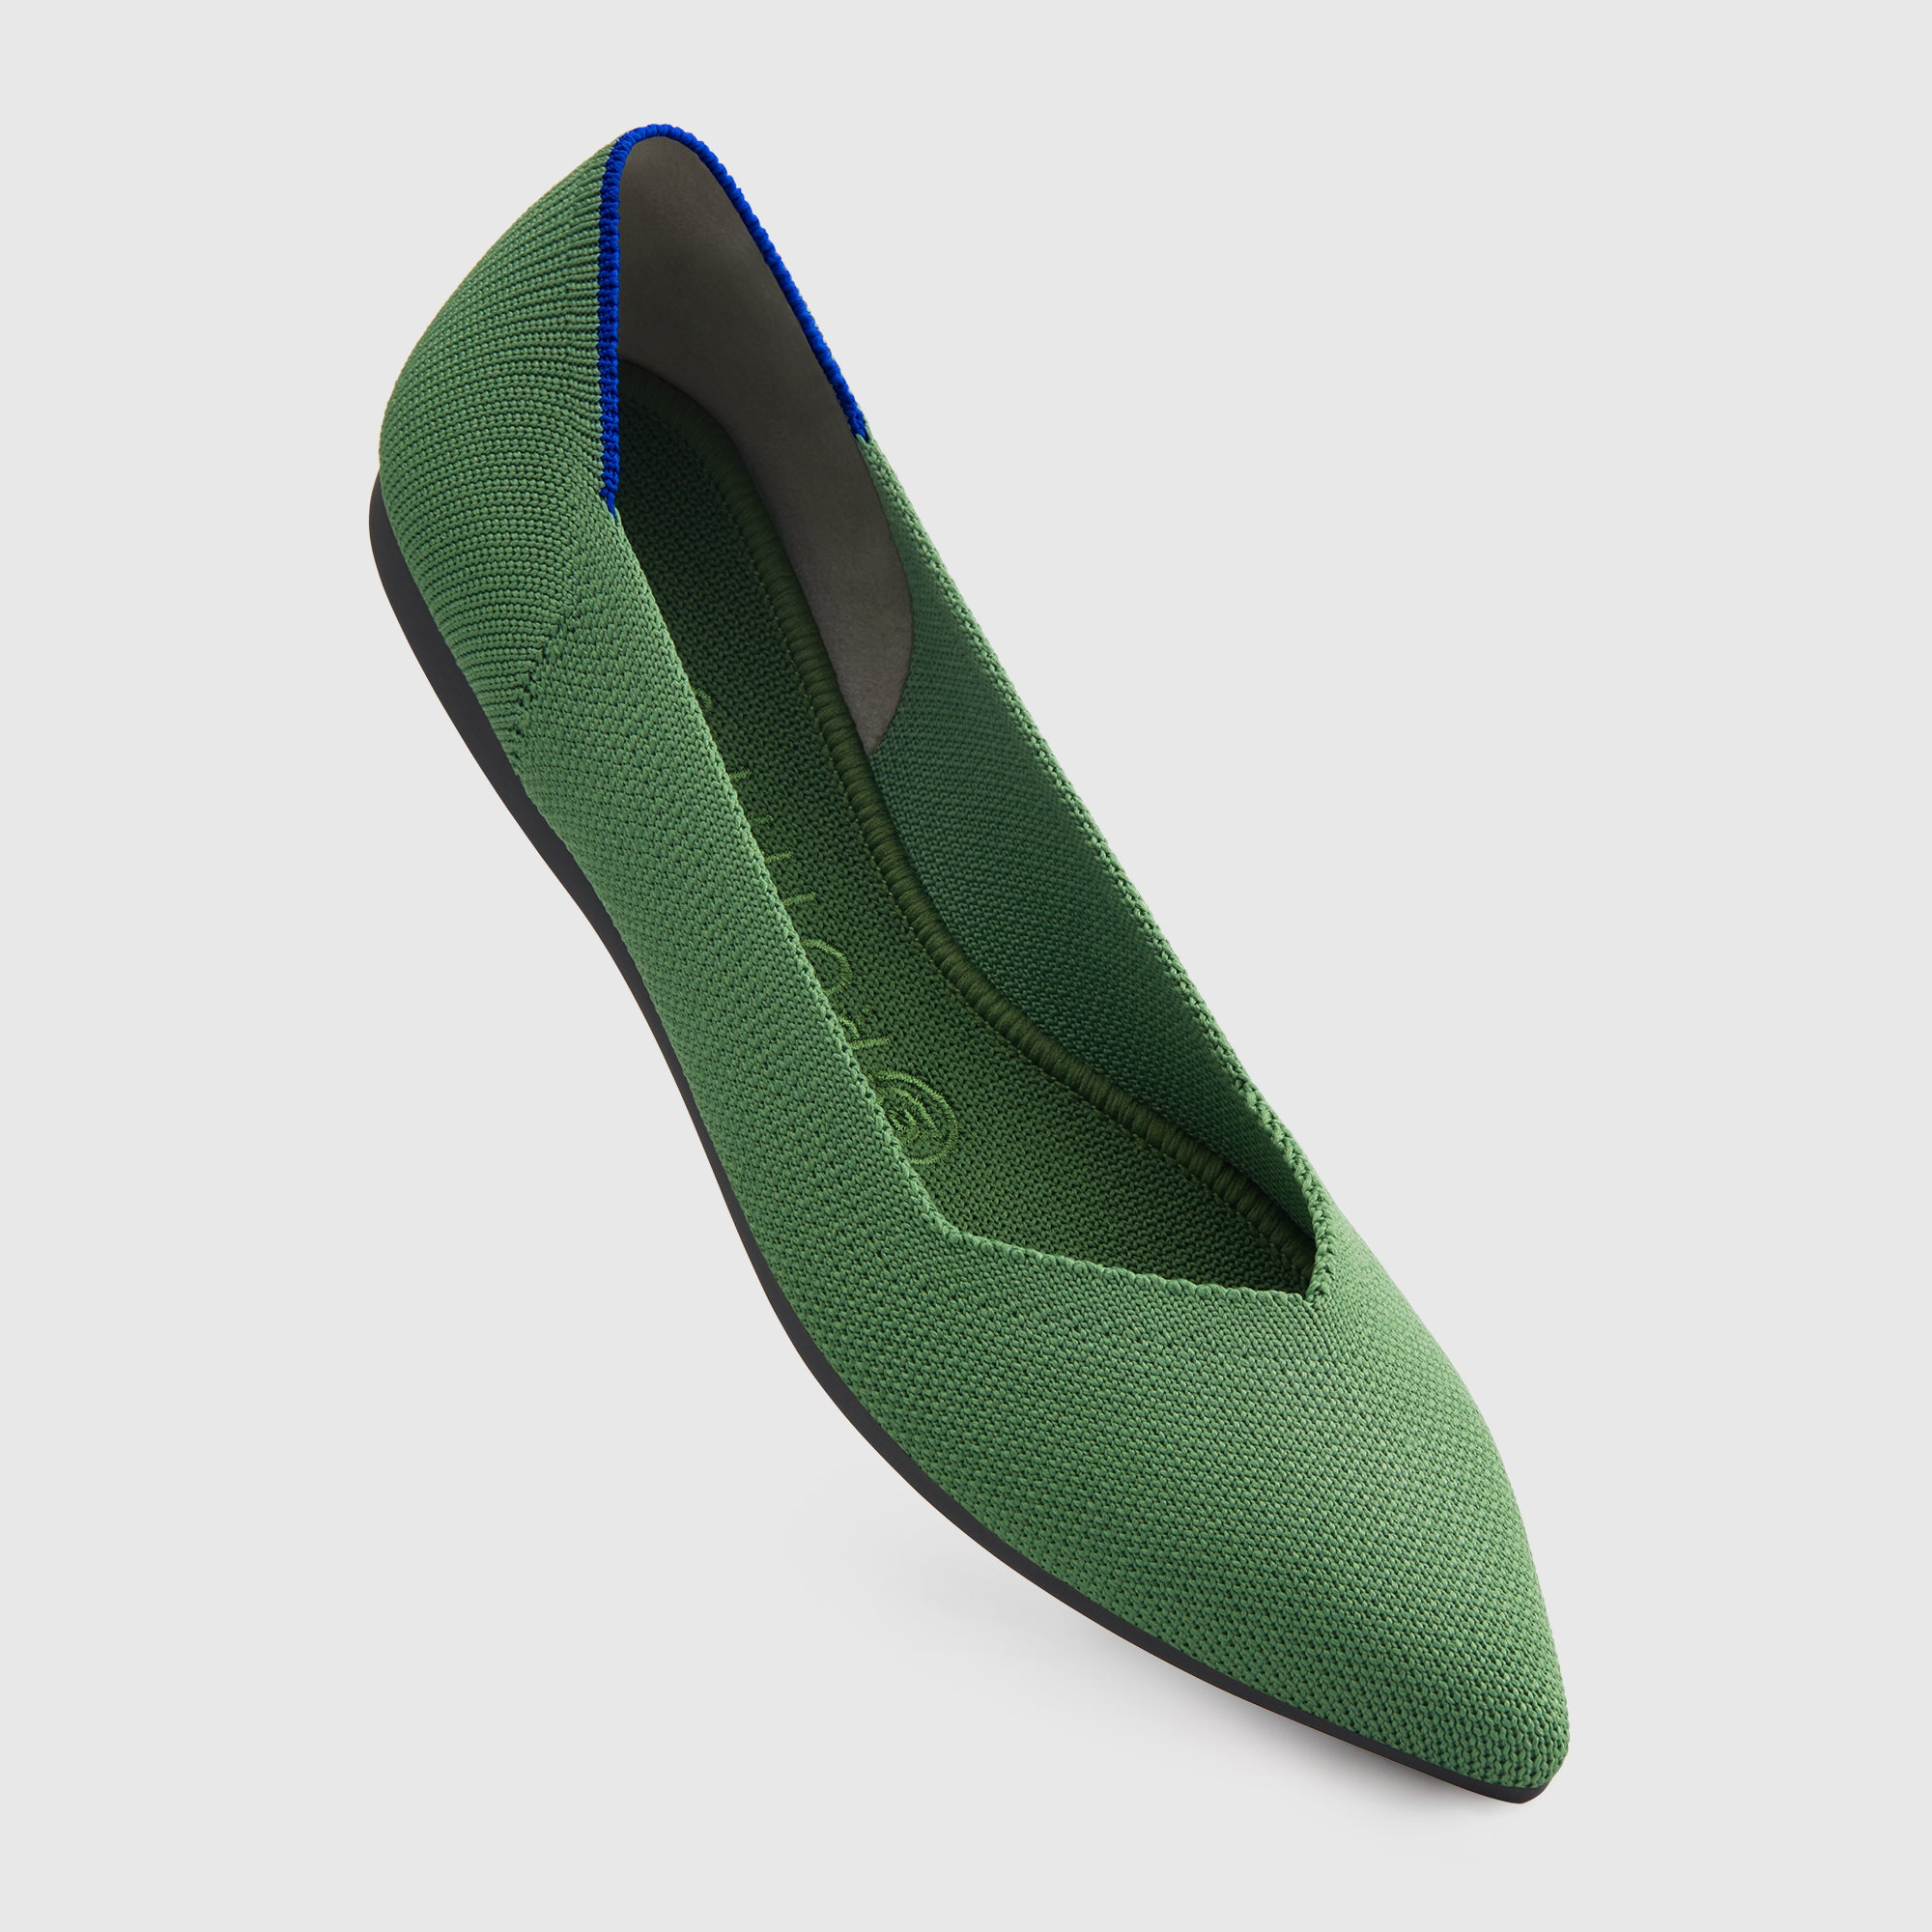 The Point shoe in Willow shown from the front at an angle.